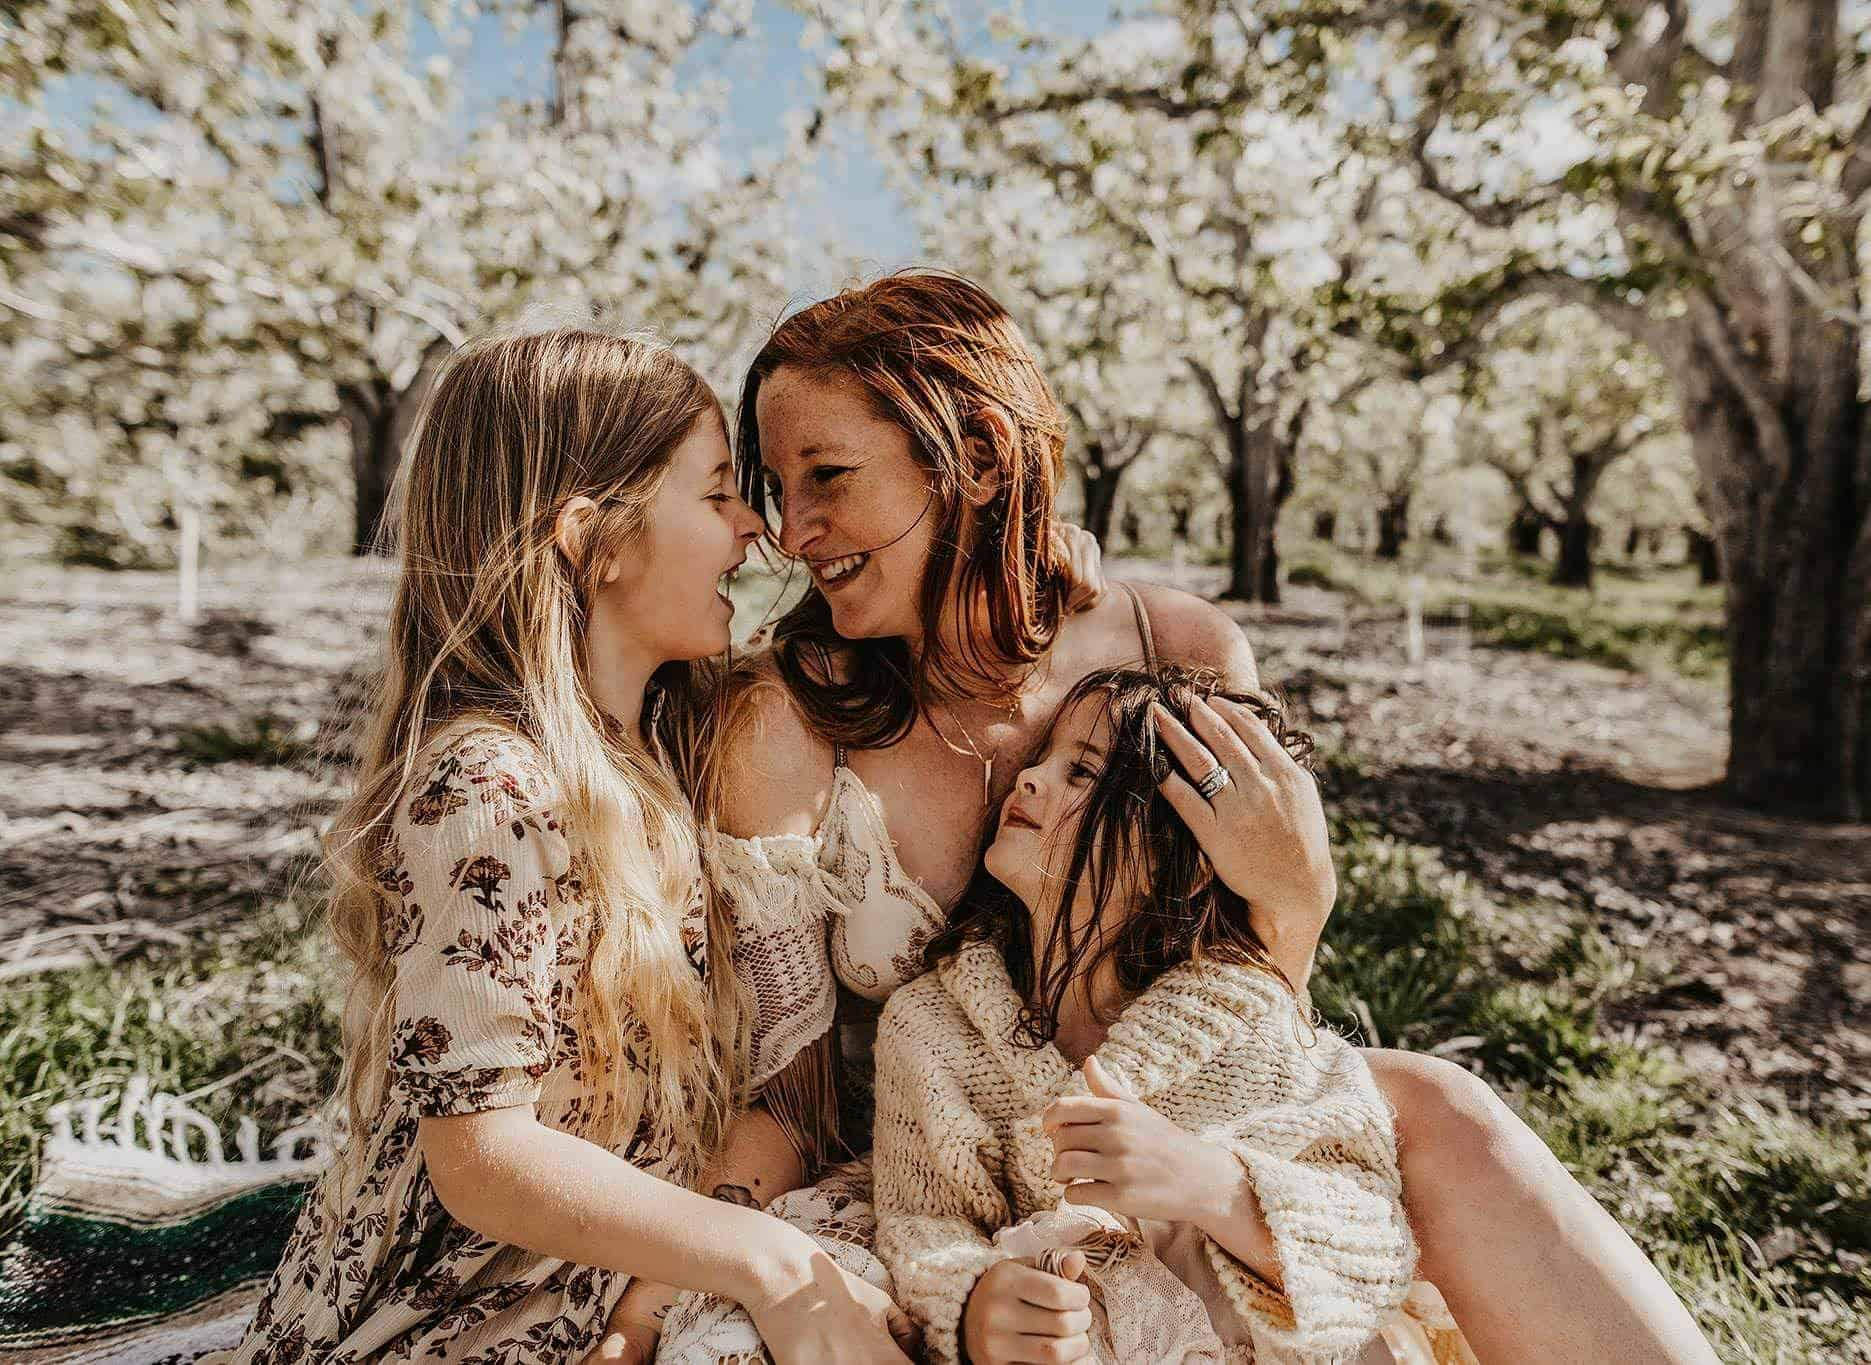 The Most Beautiful Mothers Day Images From This Year